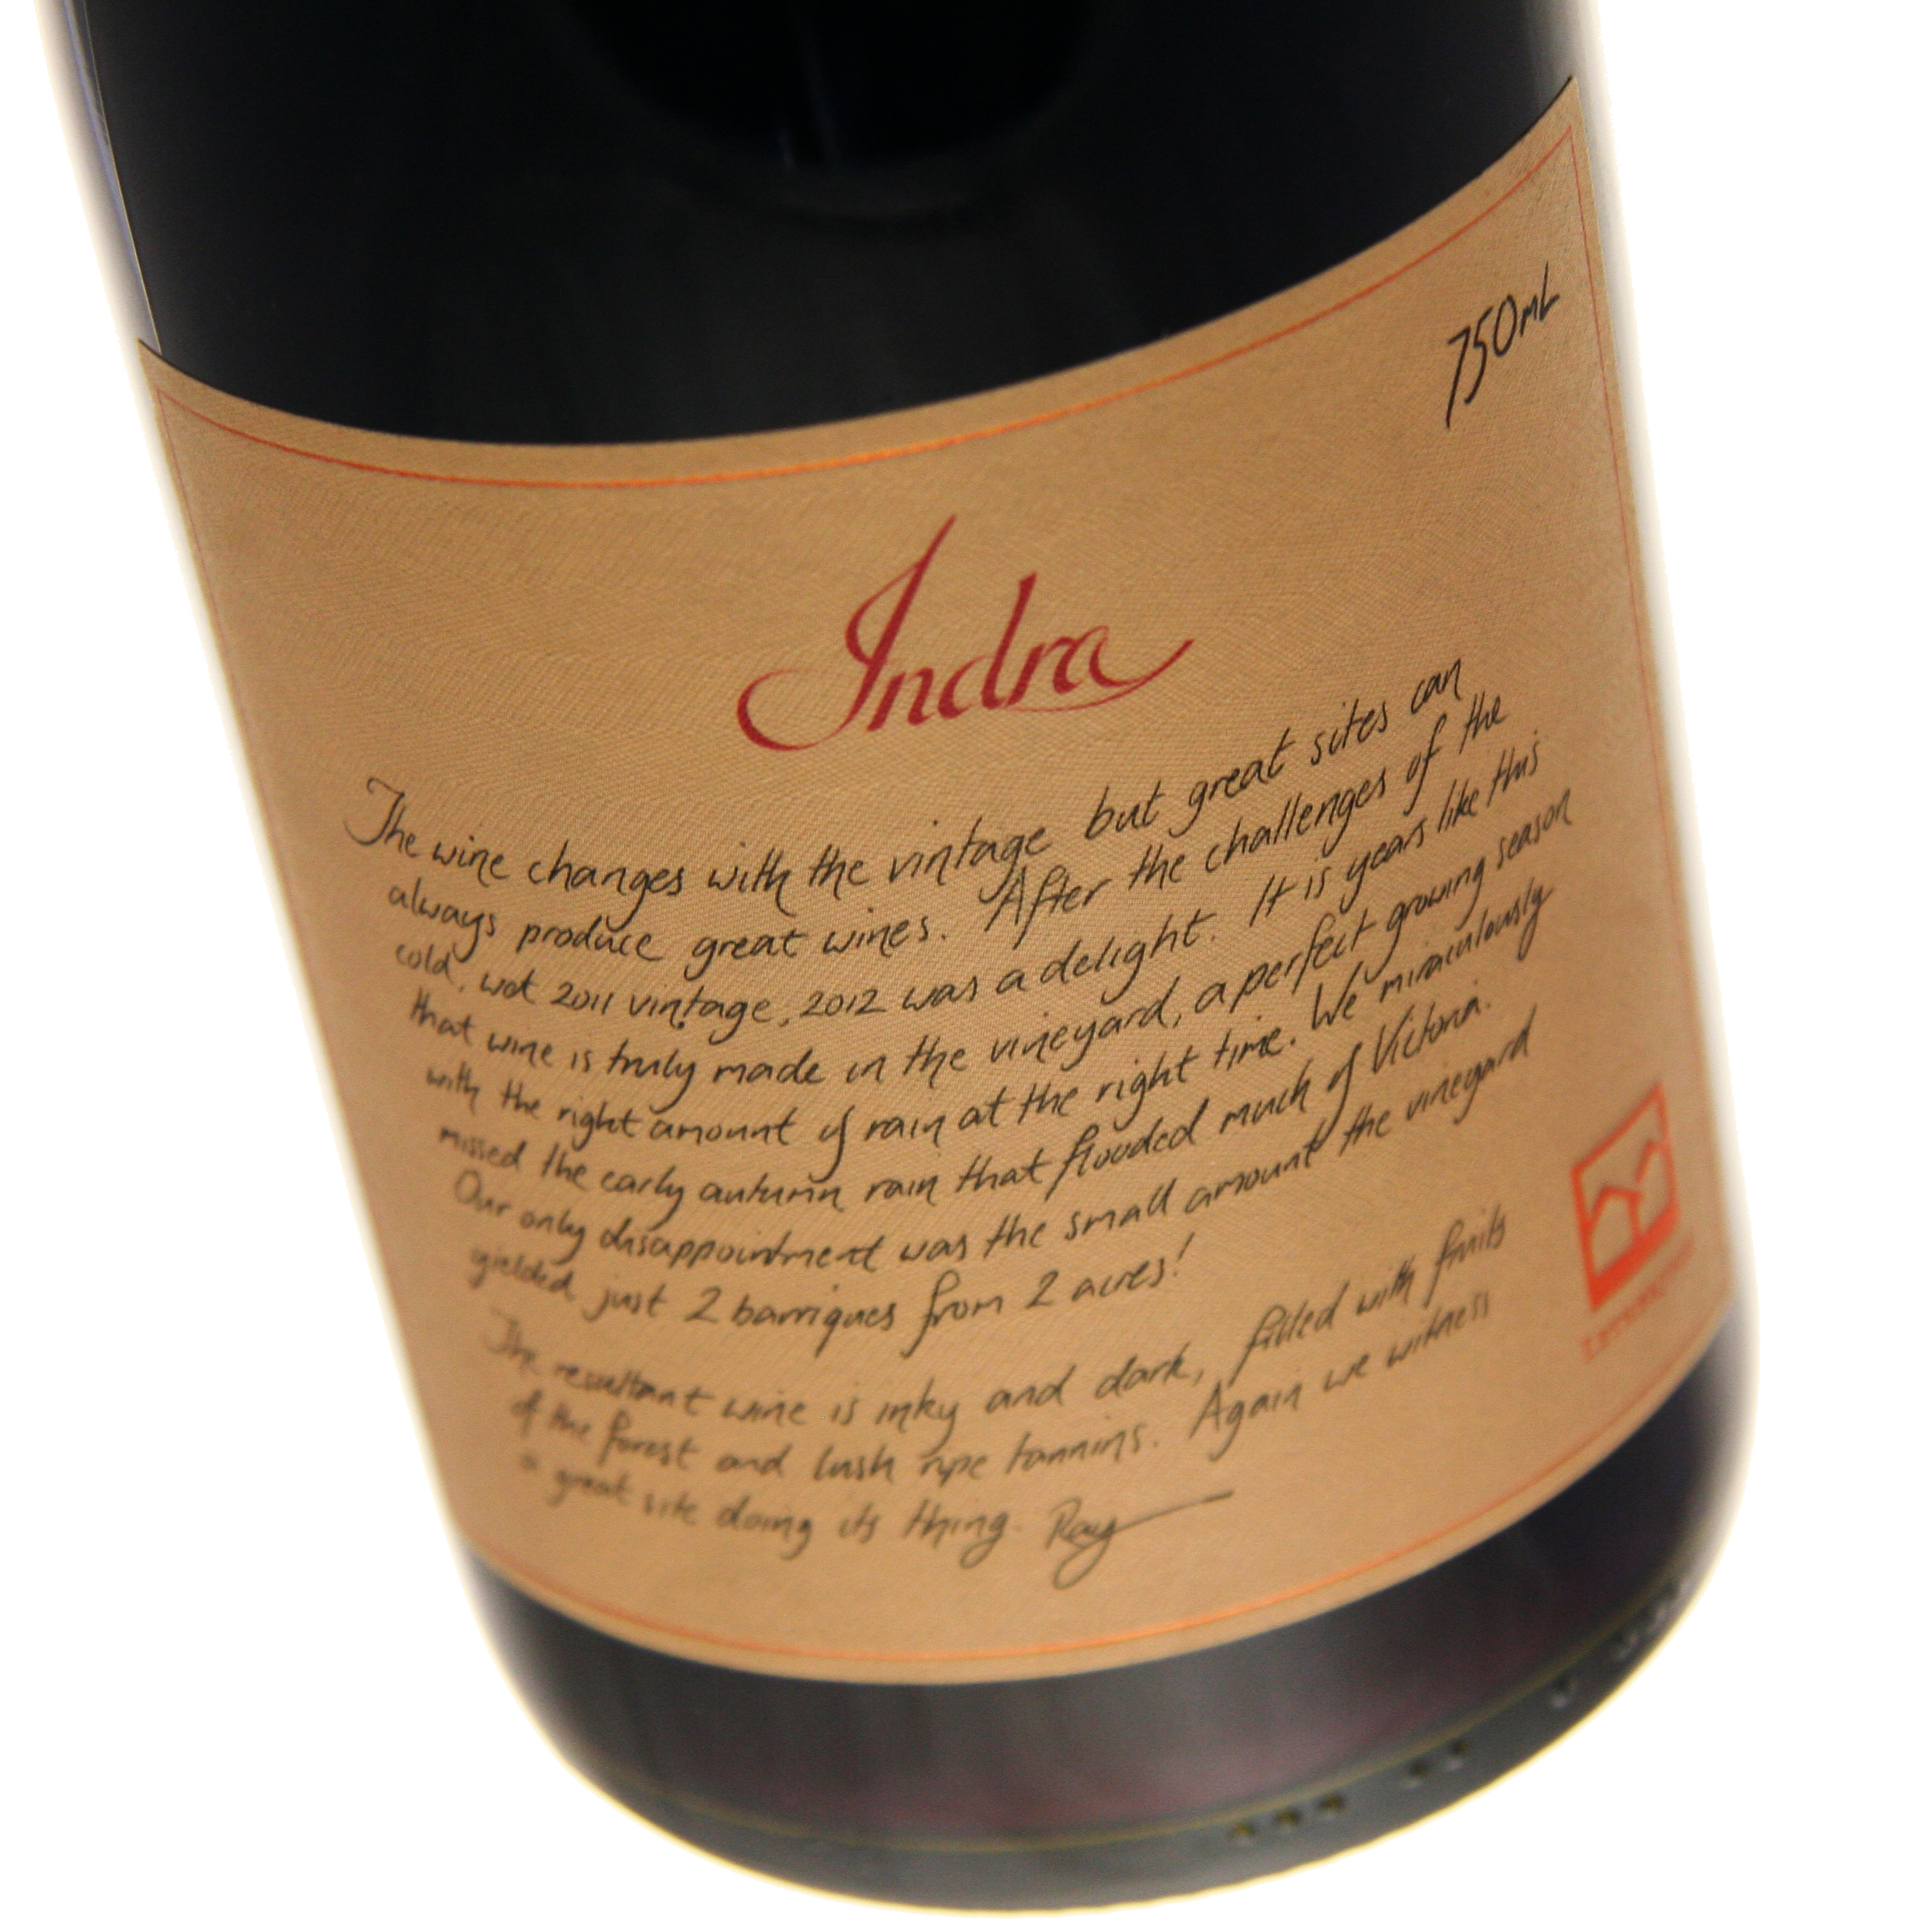 Lethbridge - Indra Shiraz 2013 12x 75cl Bottles